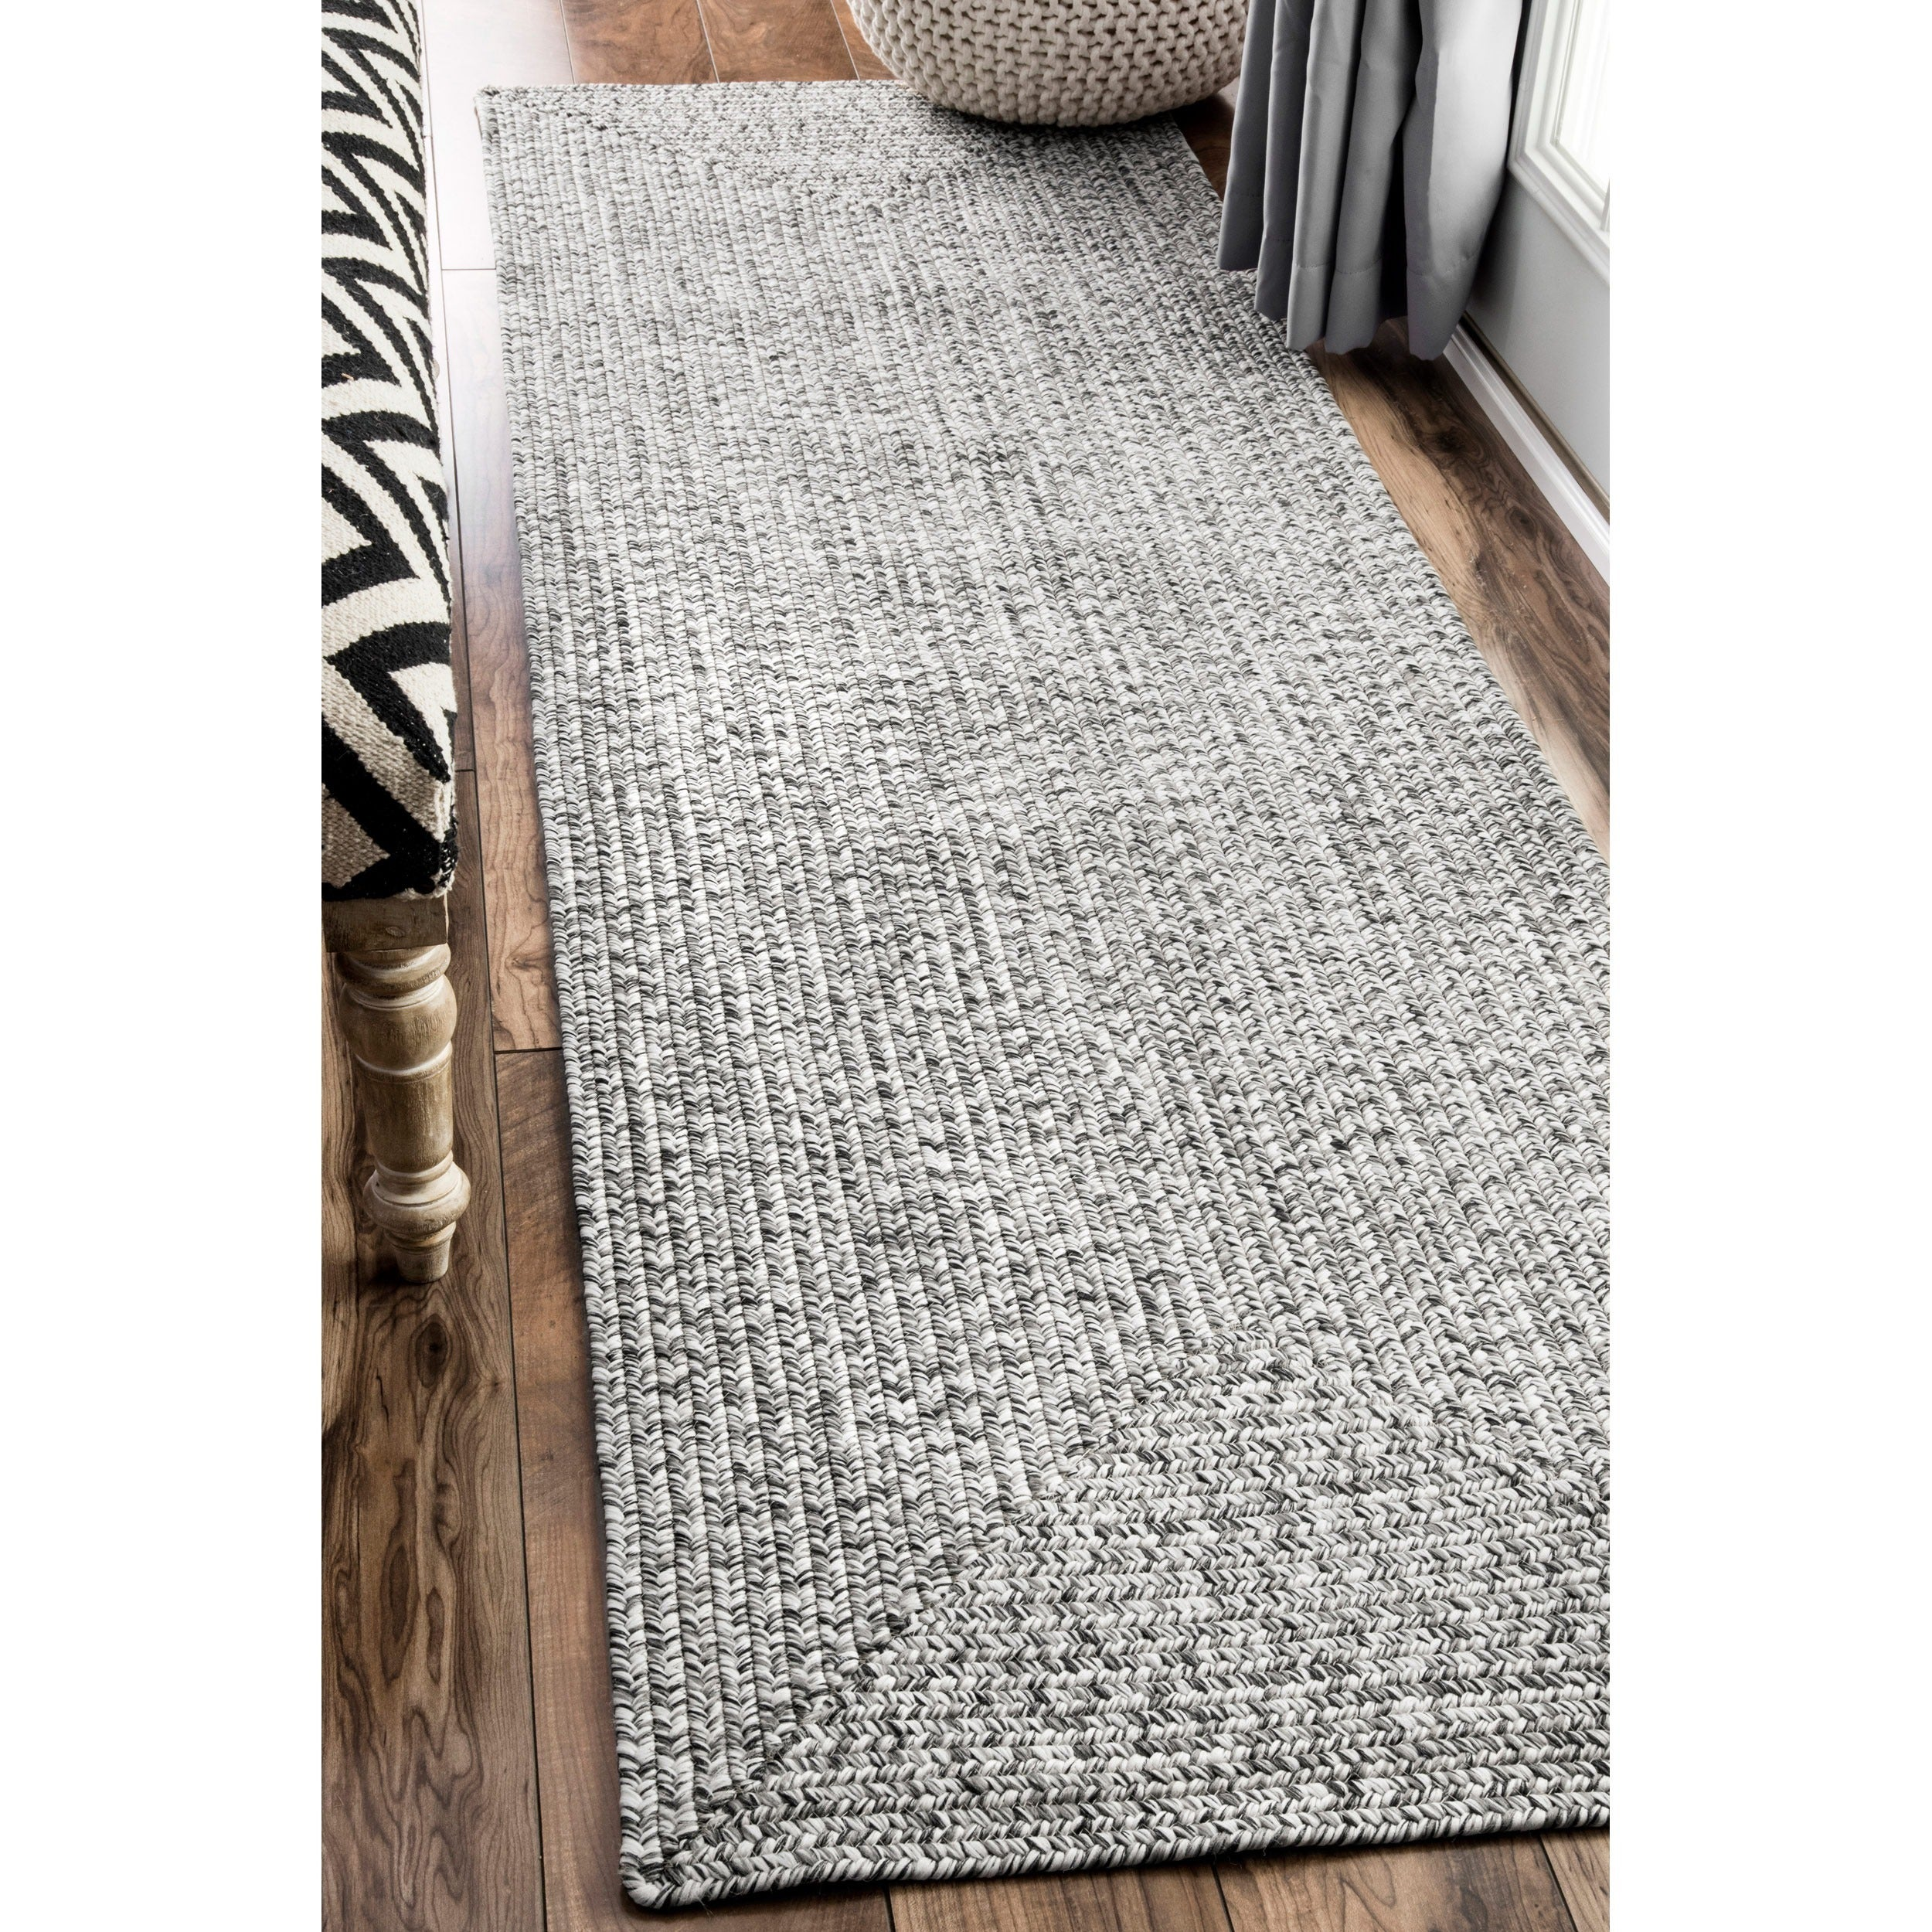 nuLOOM Handmade Casual Solid Braided Light Grey Runnner Rug (2'6 x 8')